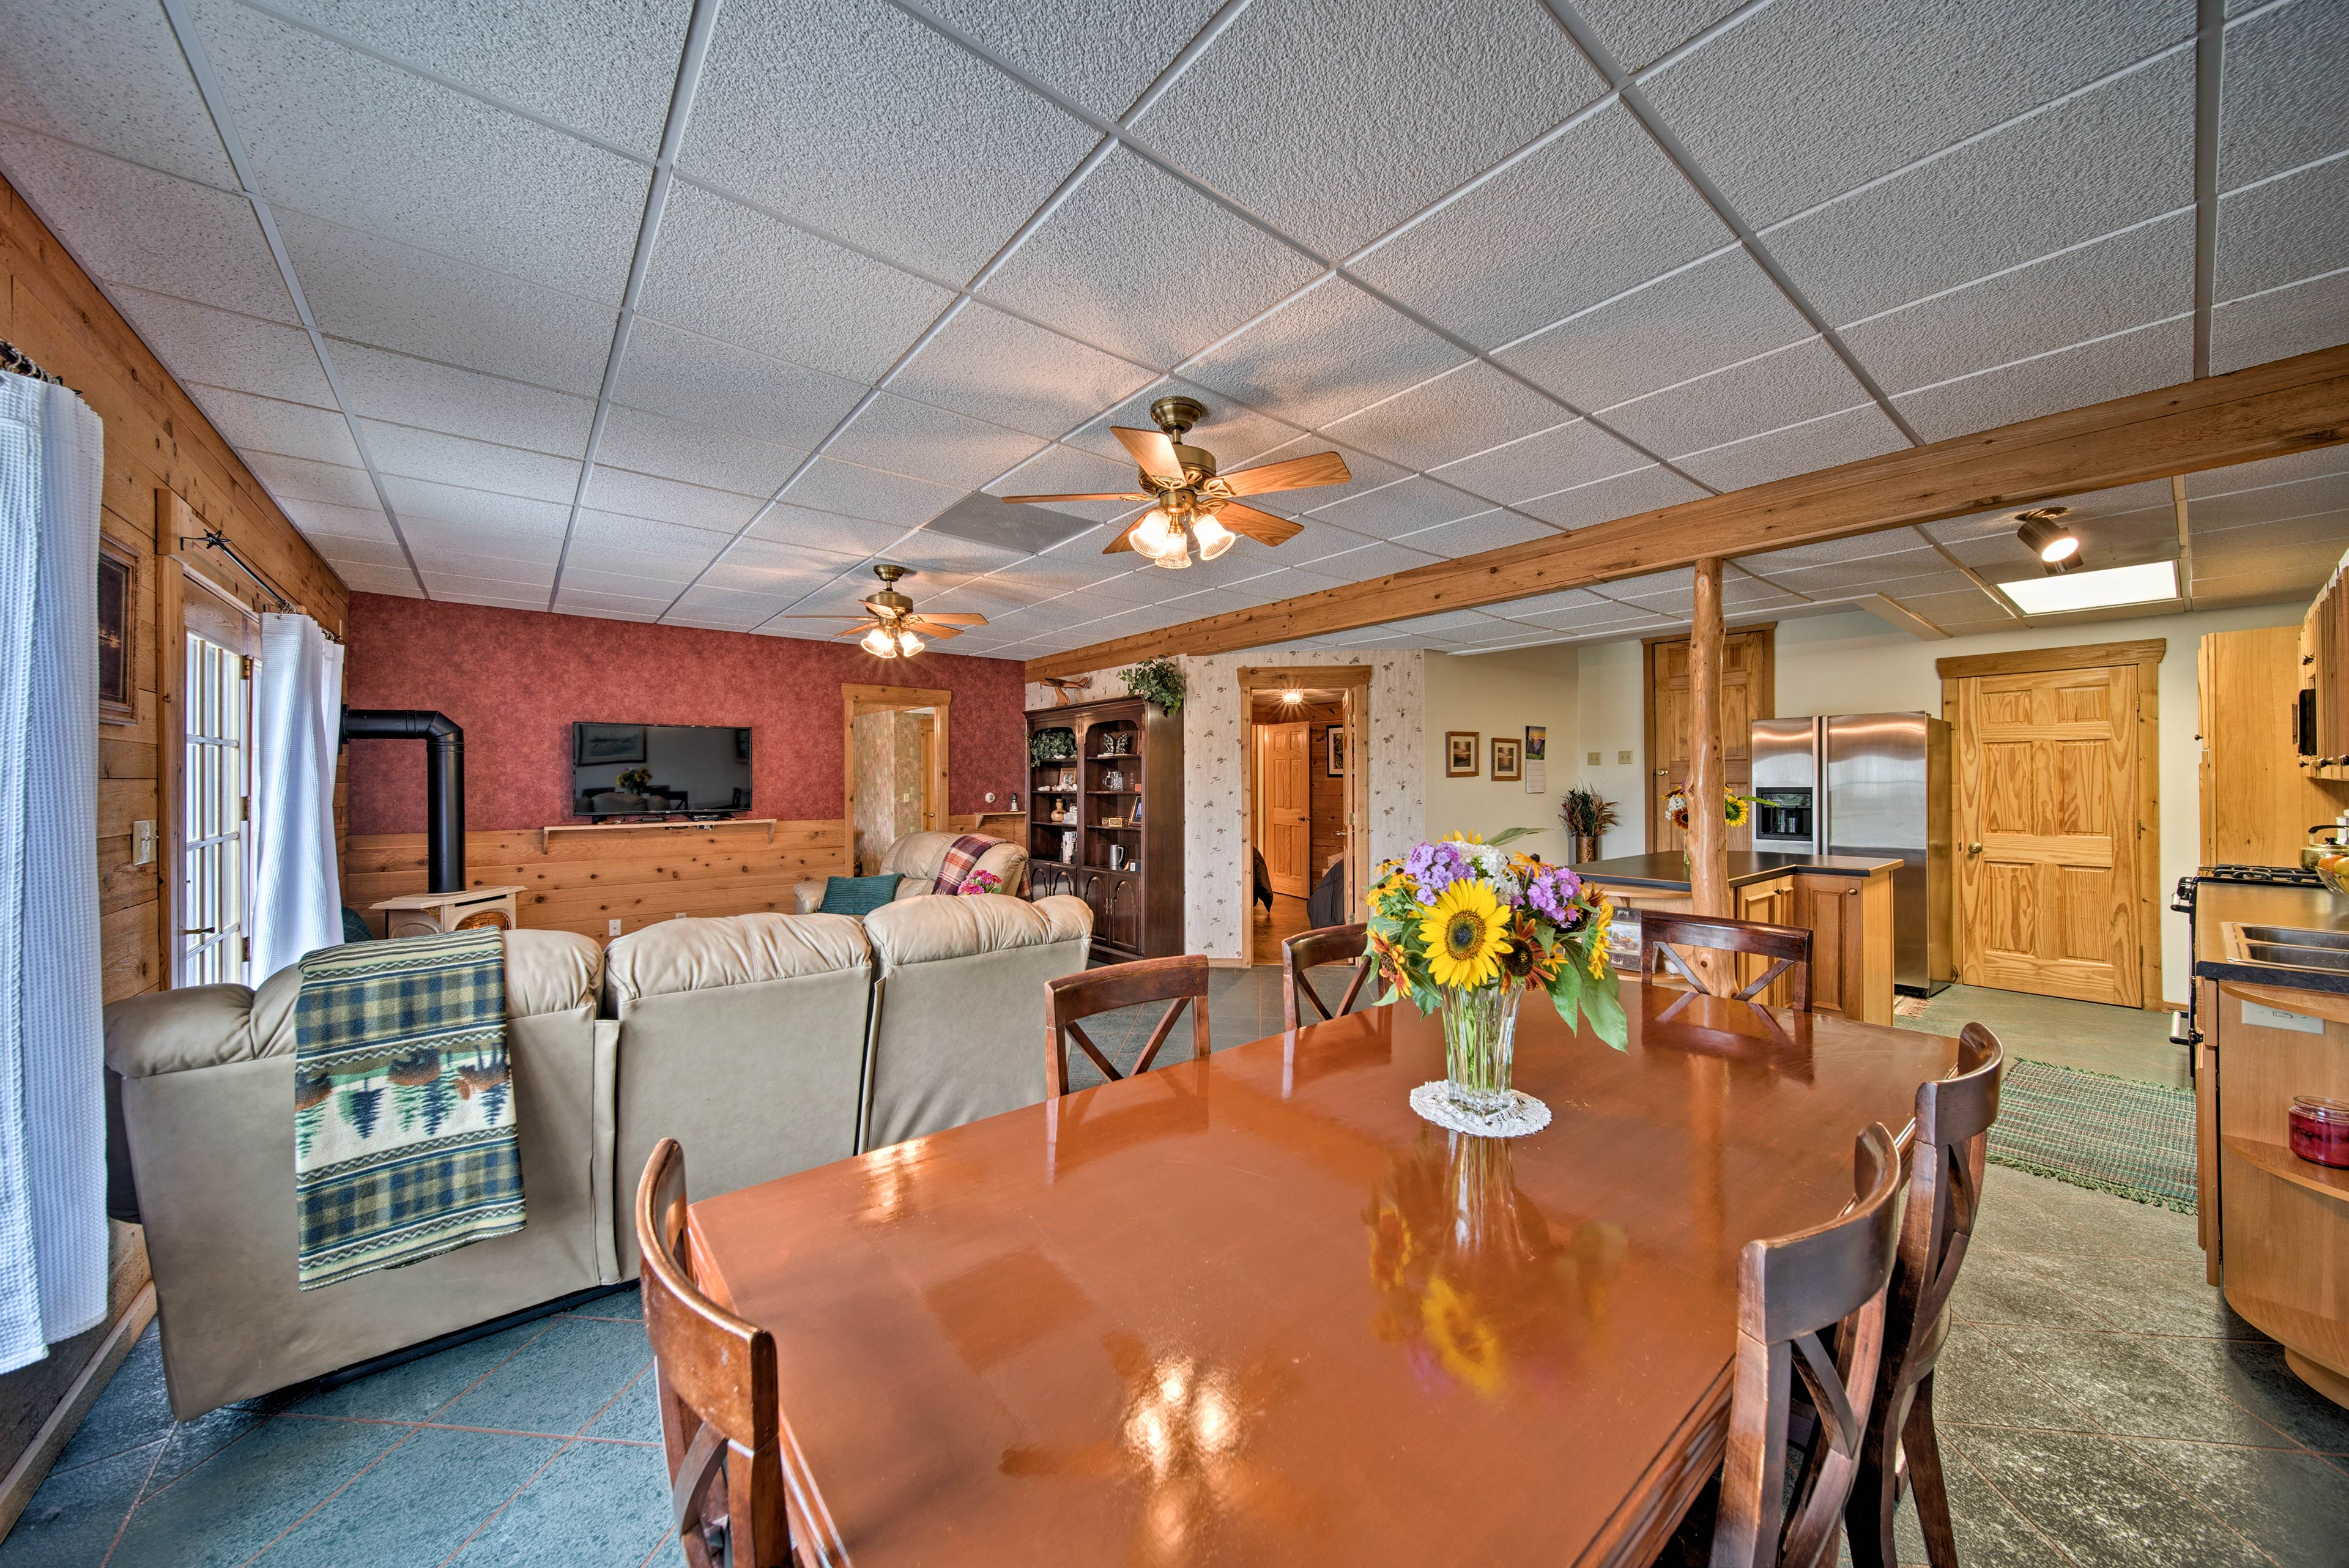 This cozy vacation rental can easily accommodate 7 guests.